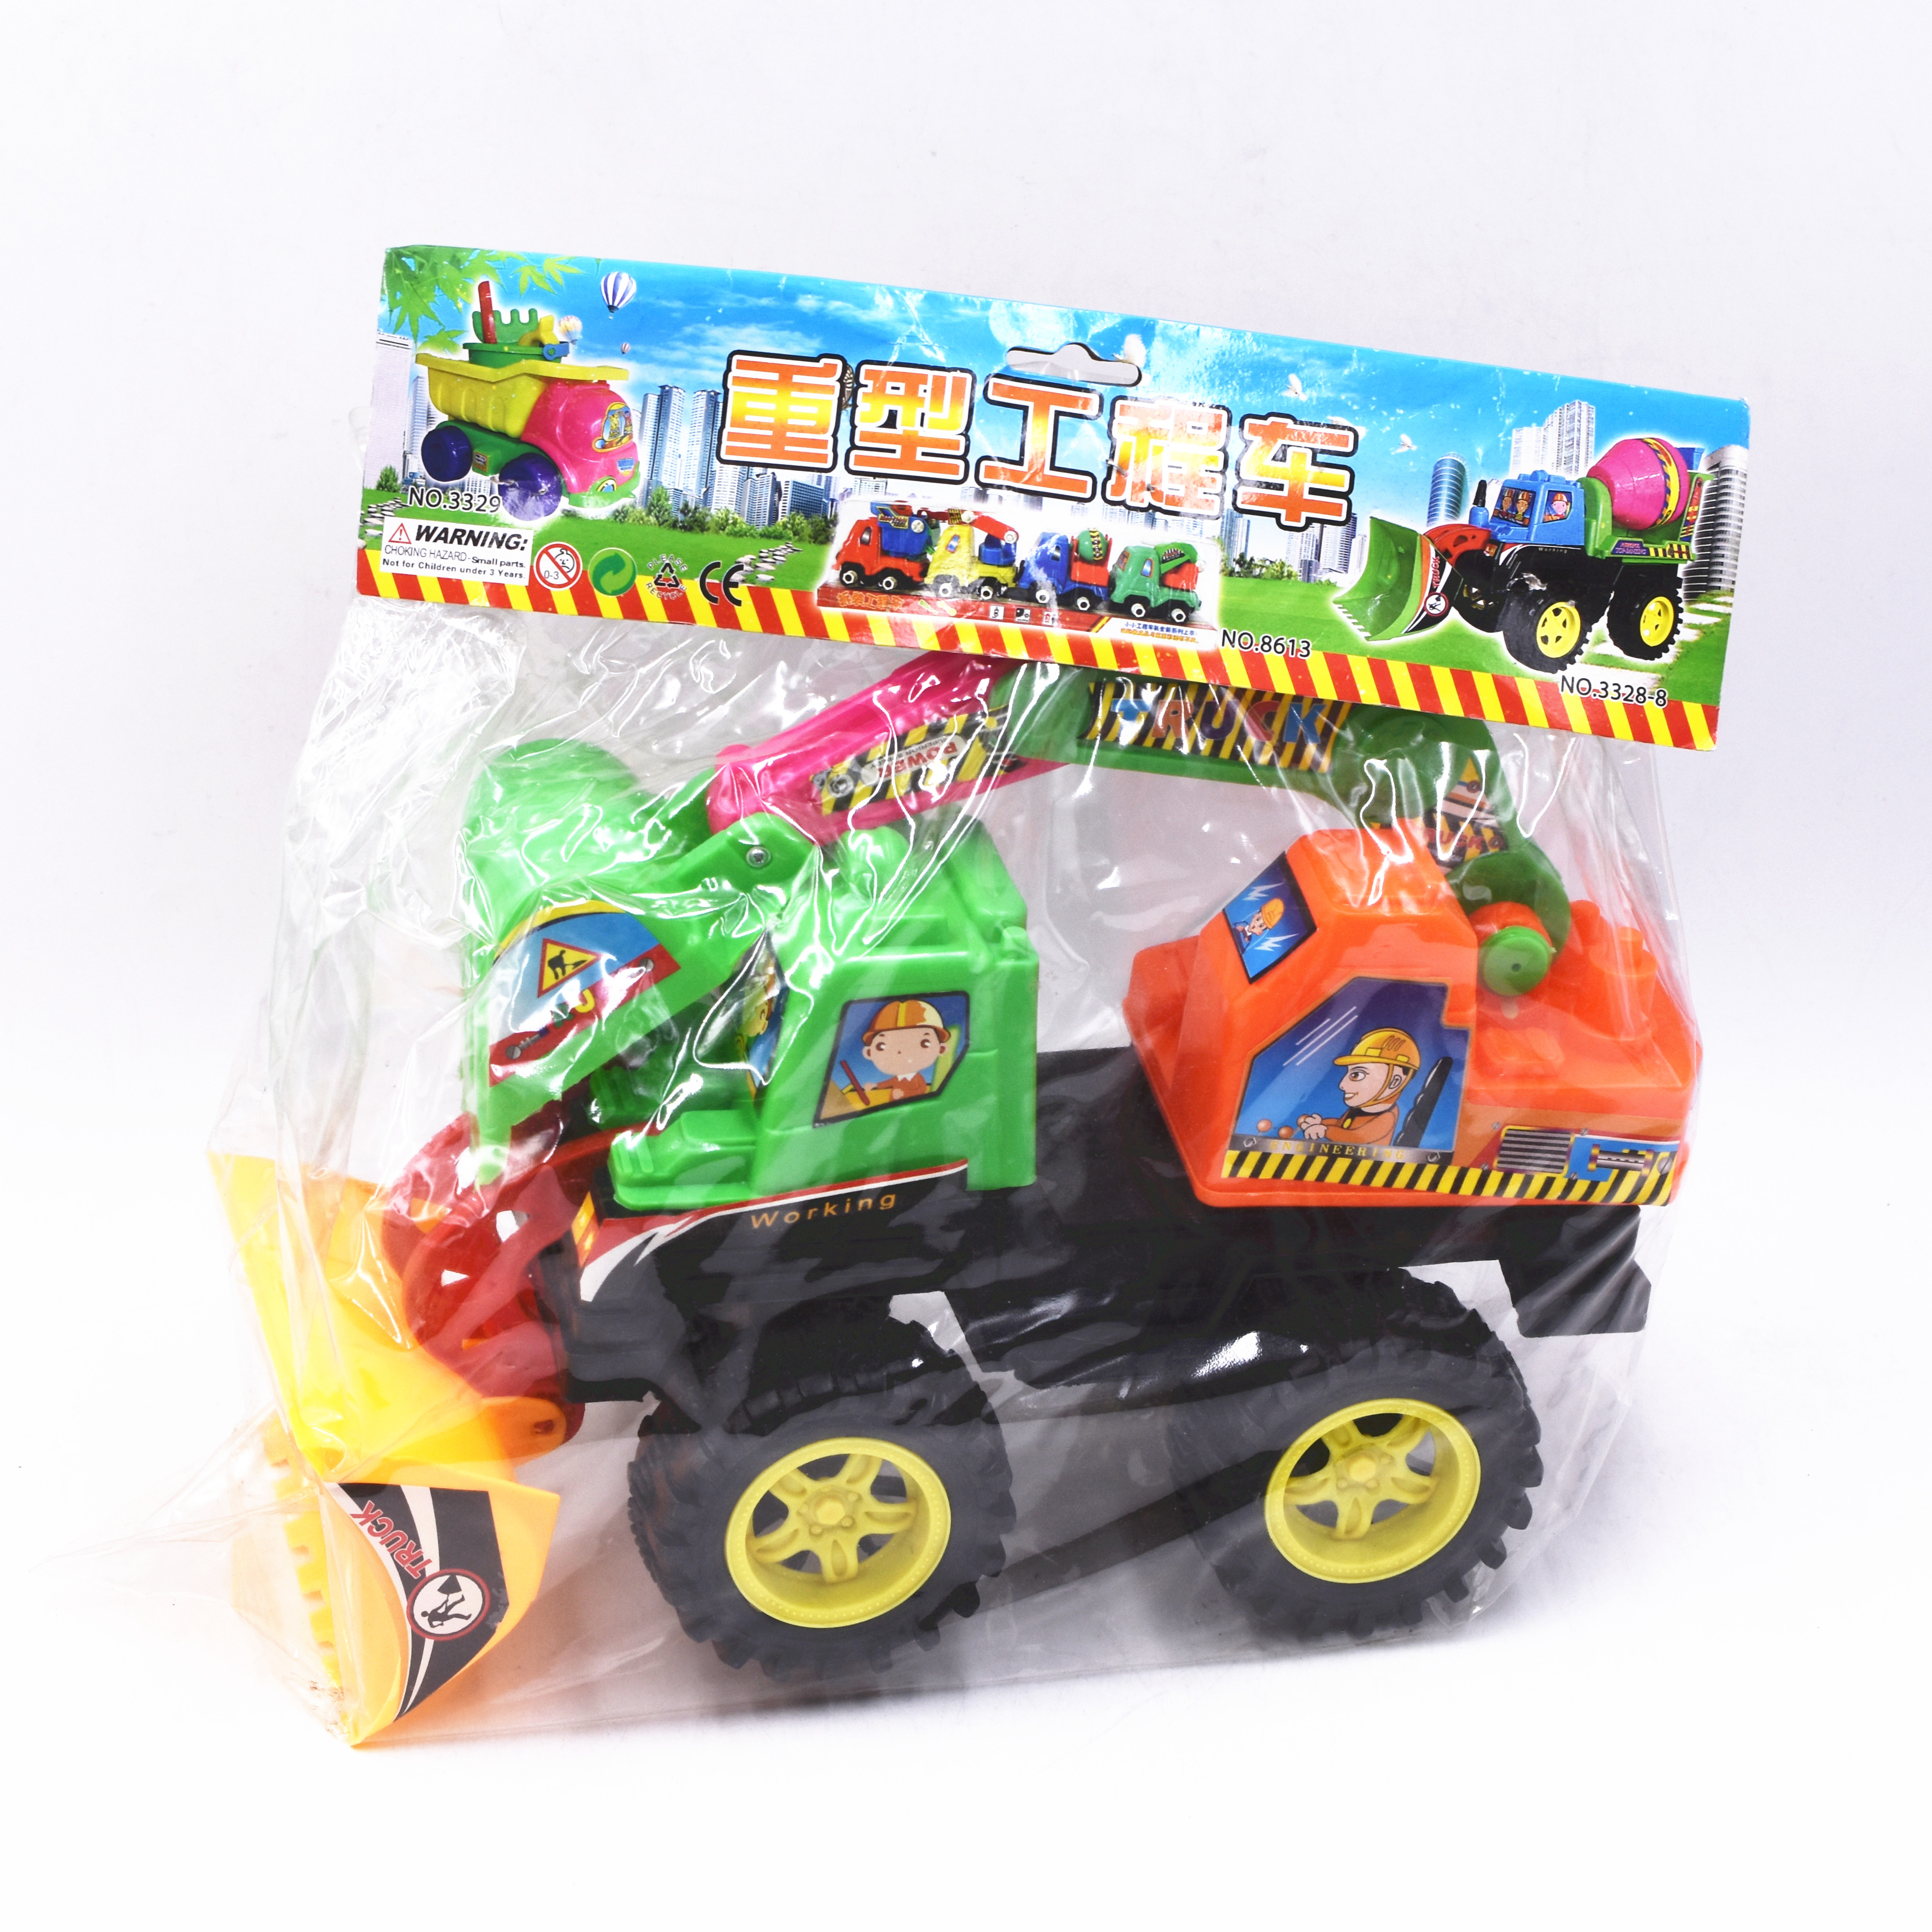 FREE WHEEL TRUCK TOY LY1793